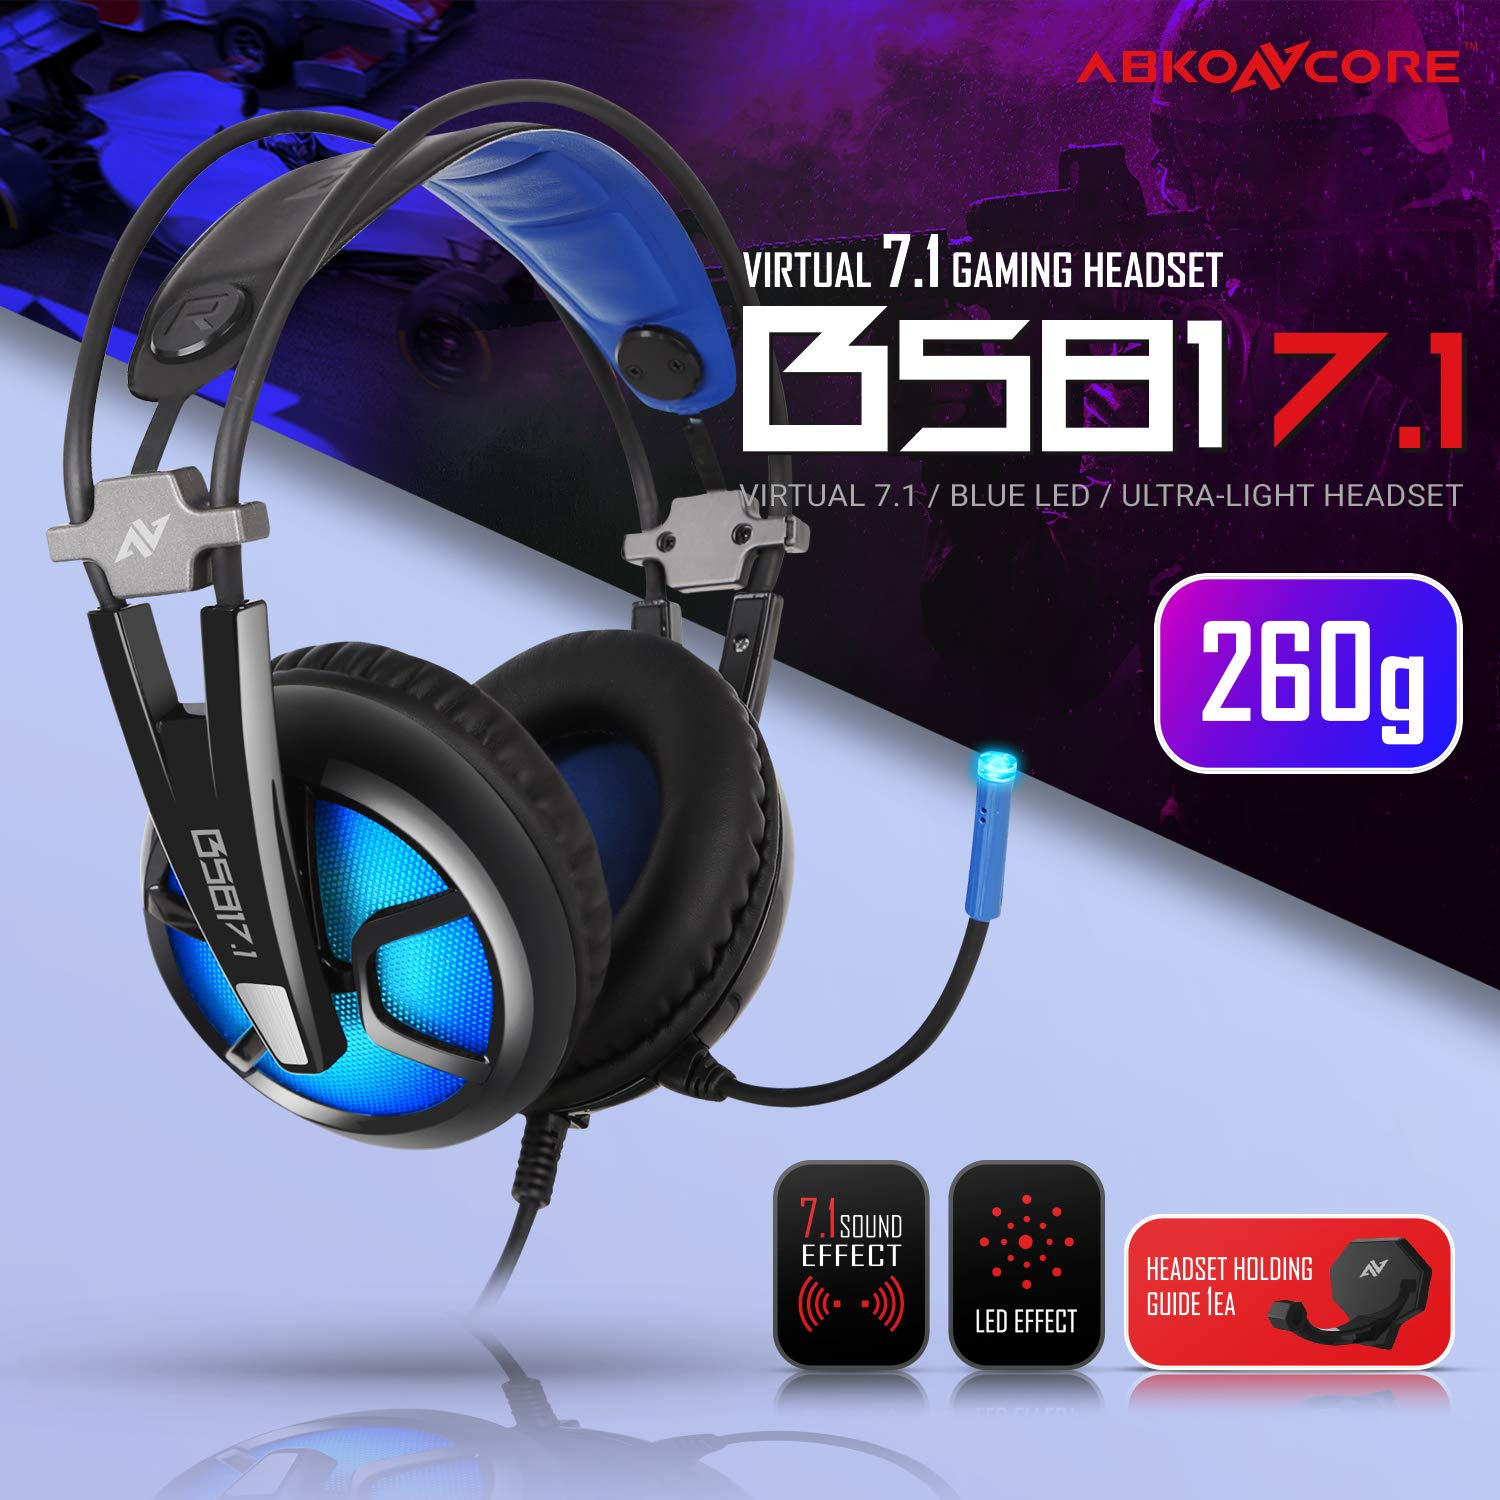 ABKONCORE B780 7.1 Surround Sound Gaming Headset for Gaming PC, Gaming Laptop, USB Headset with High Sensitive Adjustable Microphone, Over Ear Headphones, Ultralight, Breathing LED Light, Comfortable Earmuffs